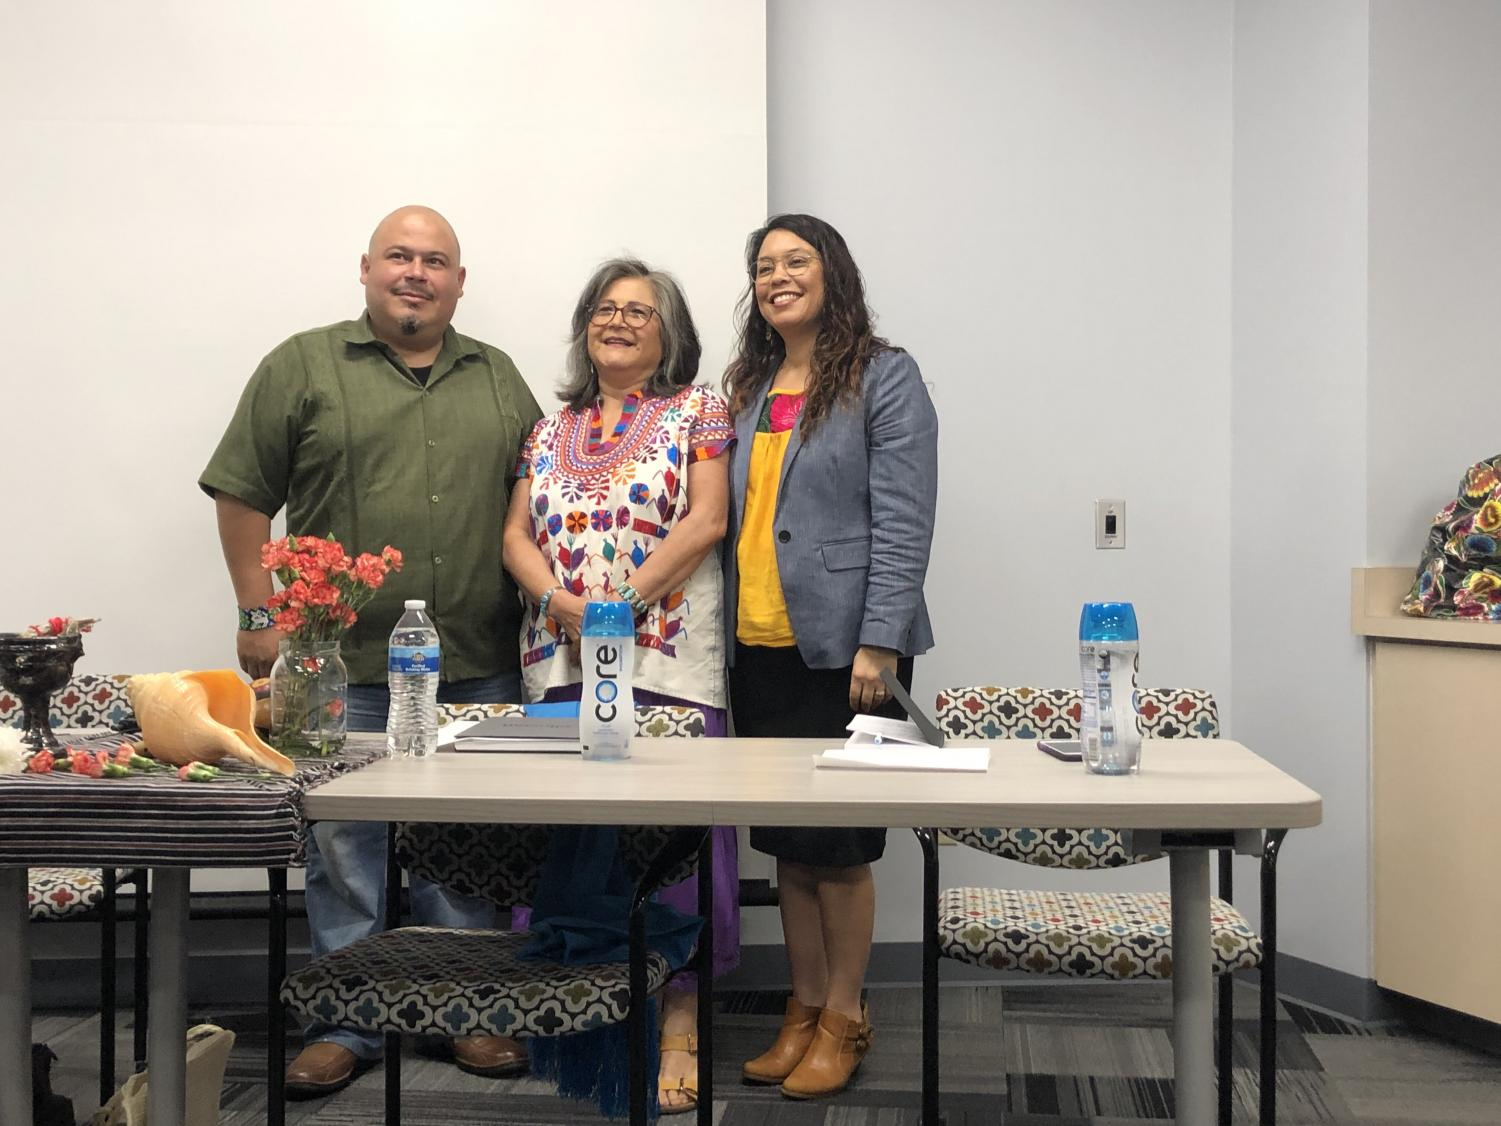 From left to right,  panelists Roberto D. Hernandez, Maria Figueroa and Bea Zamora pose as Mesa students take their picture  to commemorate the Danza Azteca event.